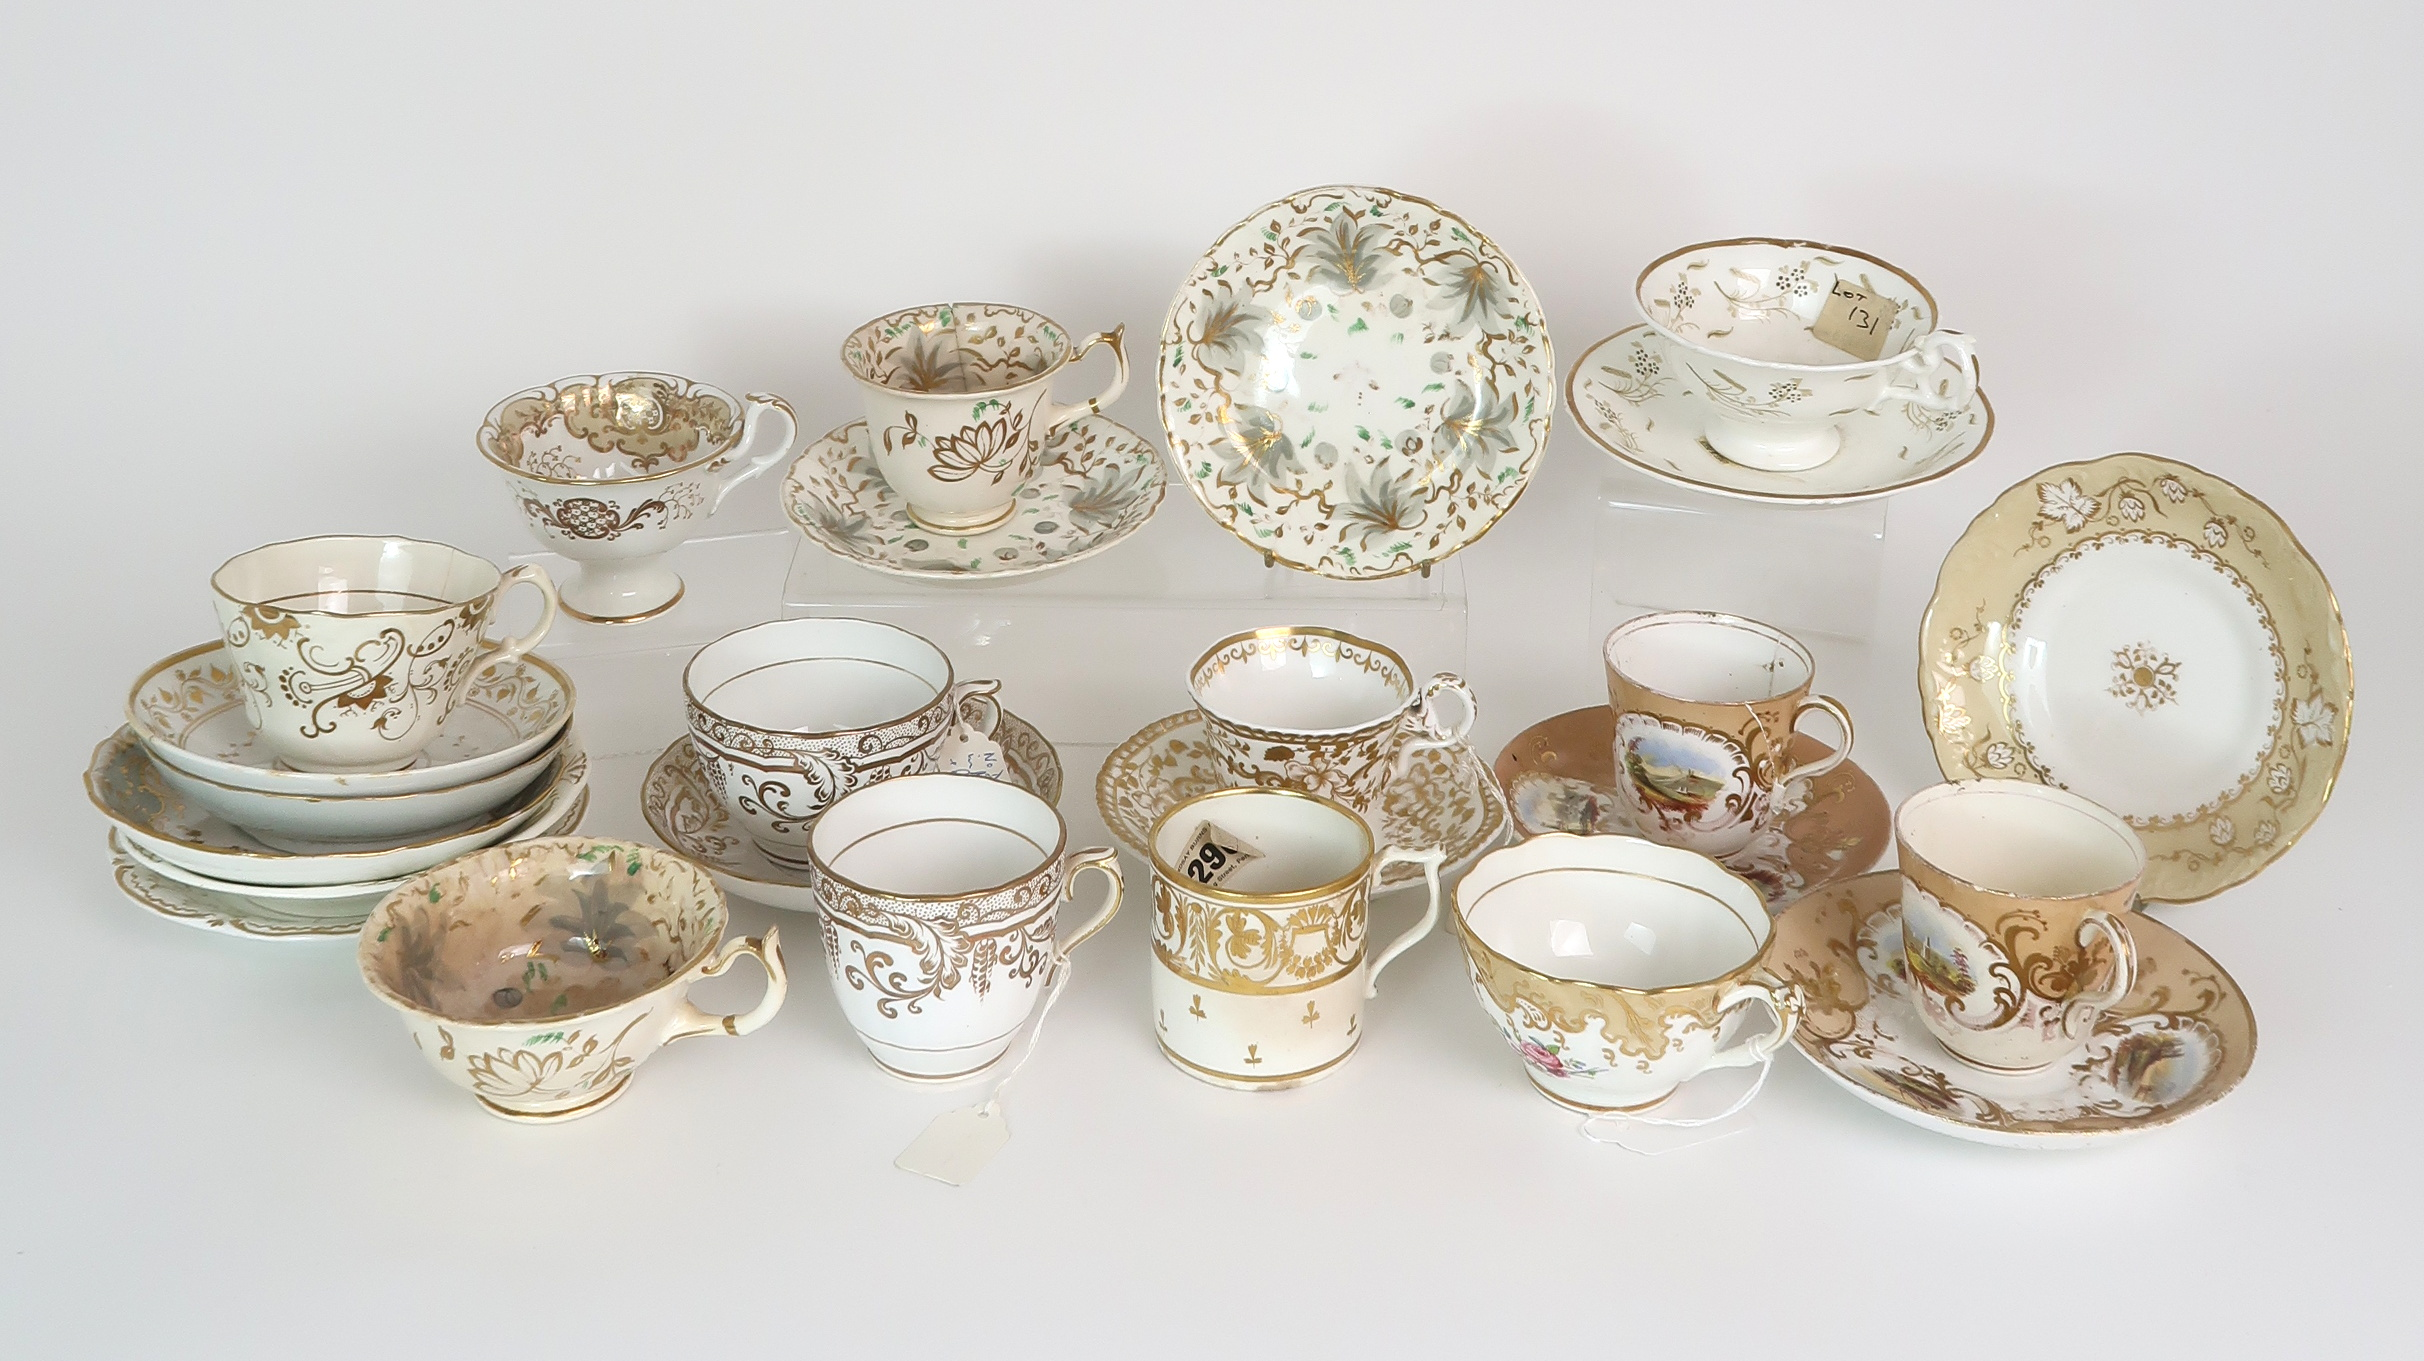 A COLLECTION OF 19TH CENTURY ENGLISH TEA AND COFFEE WARES the white ground with either grey and gilt - Image 7 of 22